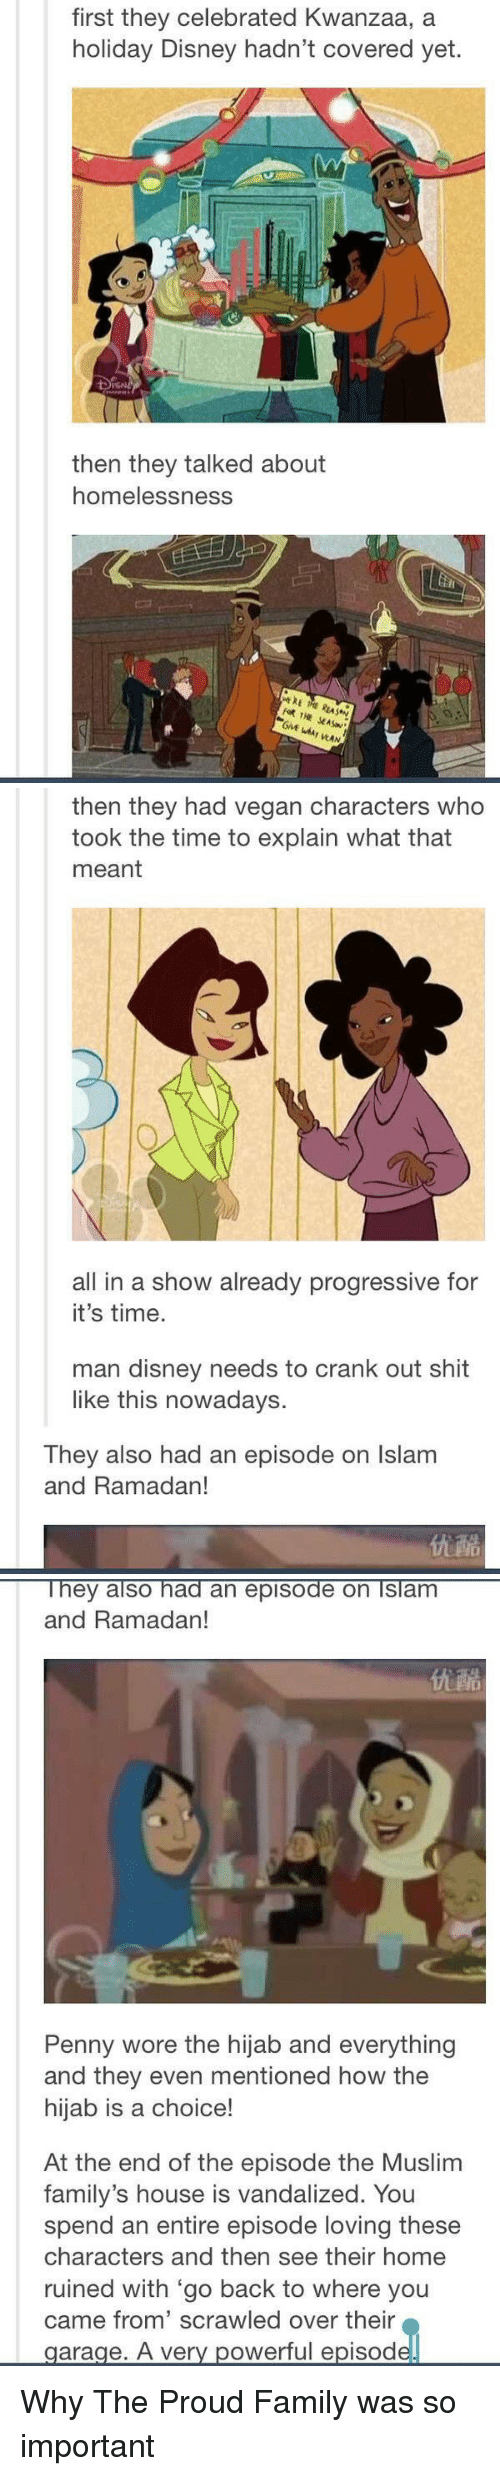 The Proud Family: first they celebrated Kwanzaa, a  holiday Disney hadn't covered yet.  then they talked about  homelessness.  THE  WAN   then they had vegan characters who  took the time to explain what that  meant  all in a show already progressive for  it's time.  man disney needs to crank out shit  like this nowadays.  They also had an episode on lslam  and Ramadan!   They also had an episode on Islam  and Ramadan!  Penny wore the hijab and everything  and they even mentioned how the  hijab is a choice!  At the end of the episode the Muslim  family's house is vandalized. You  spend an entire episode loving these  characters and then see their home  ruined with go back to where you  came from' scrawled over their  garage. A very powerful episod Why The Proud Family was so important